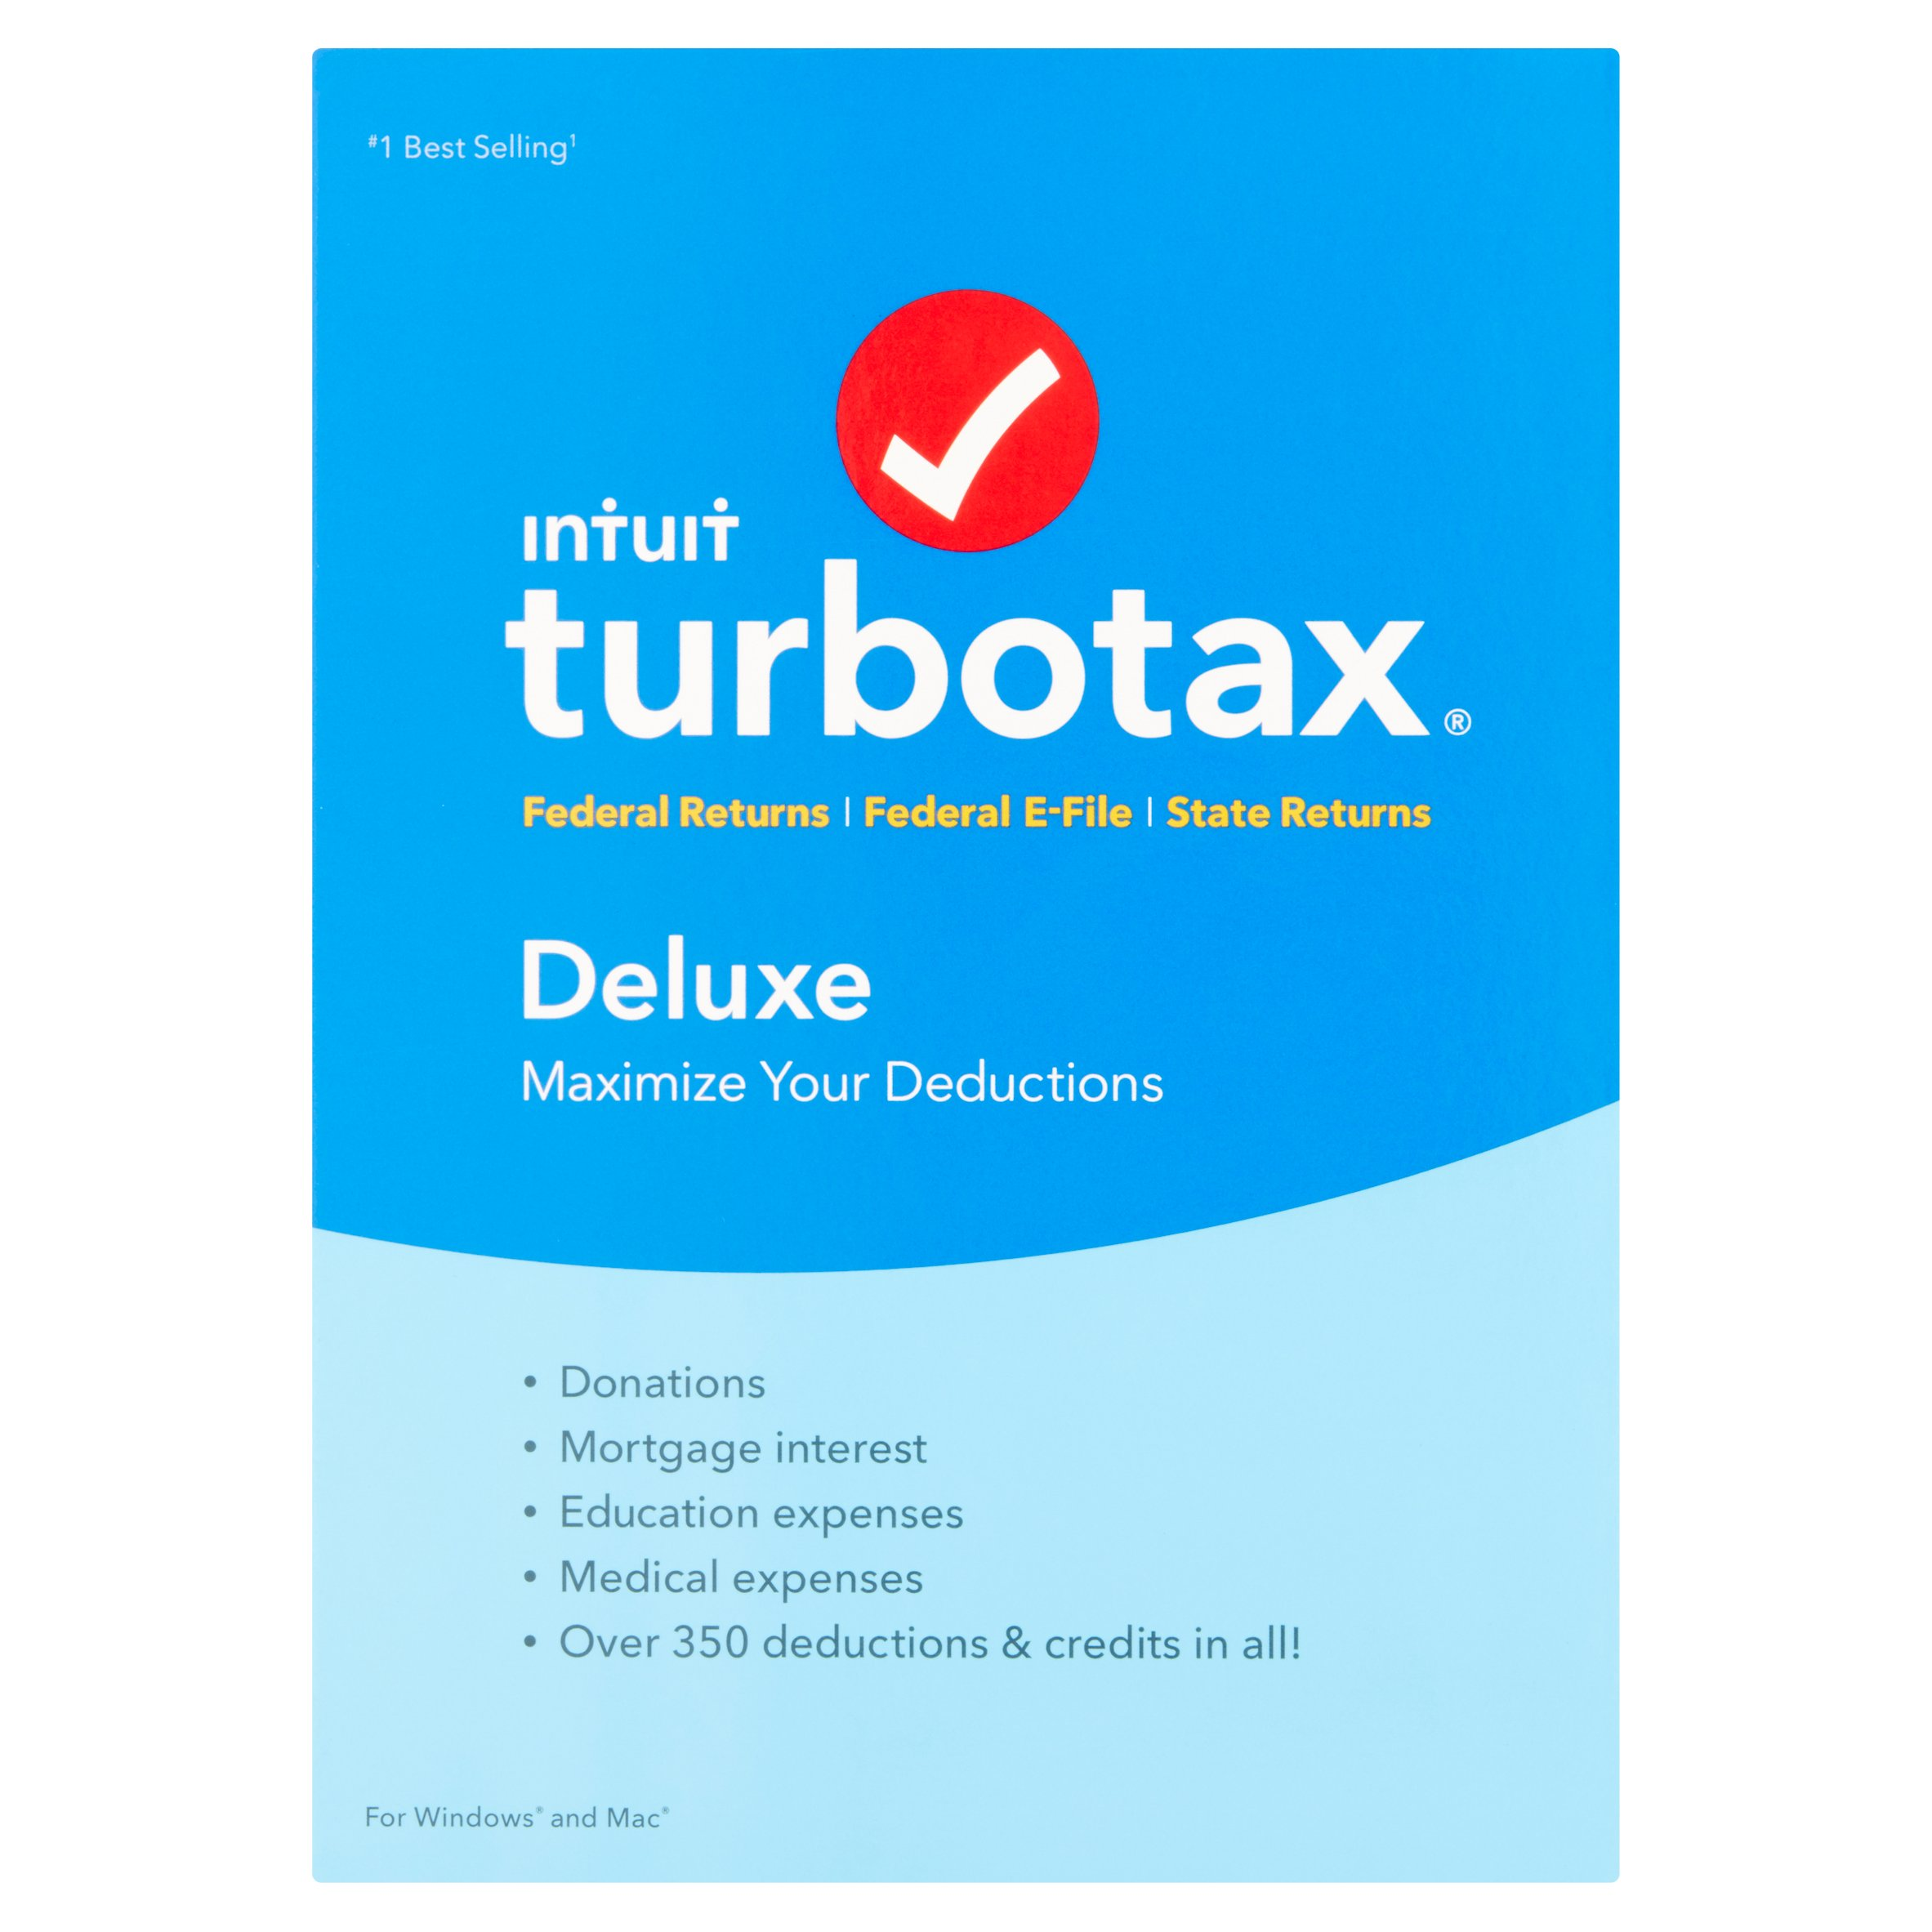 Intuit Turbotax Maximize Your Deductions Deluxe Software